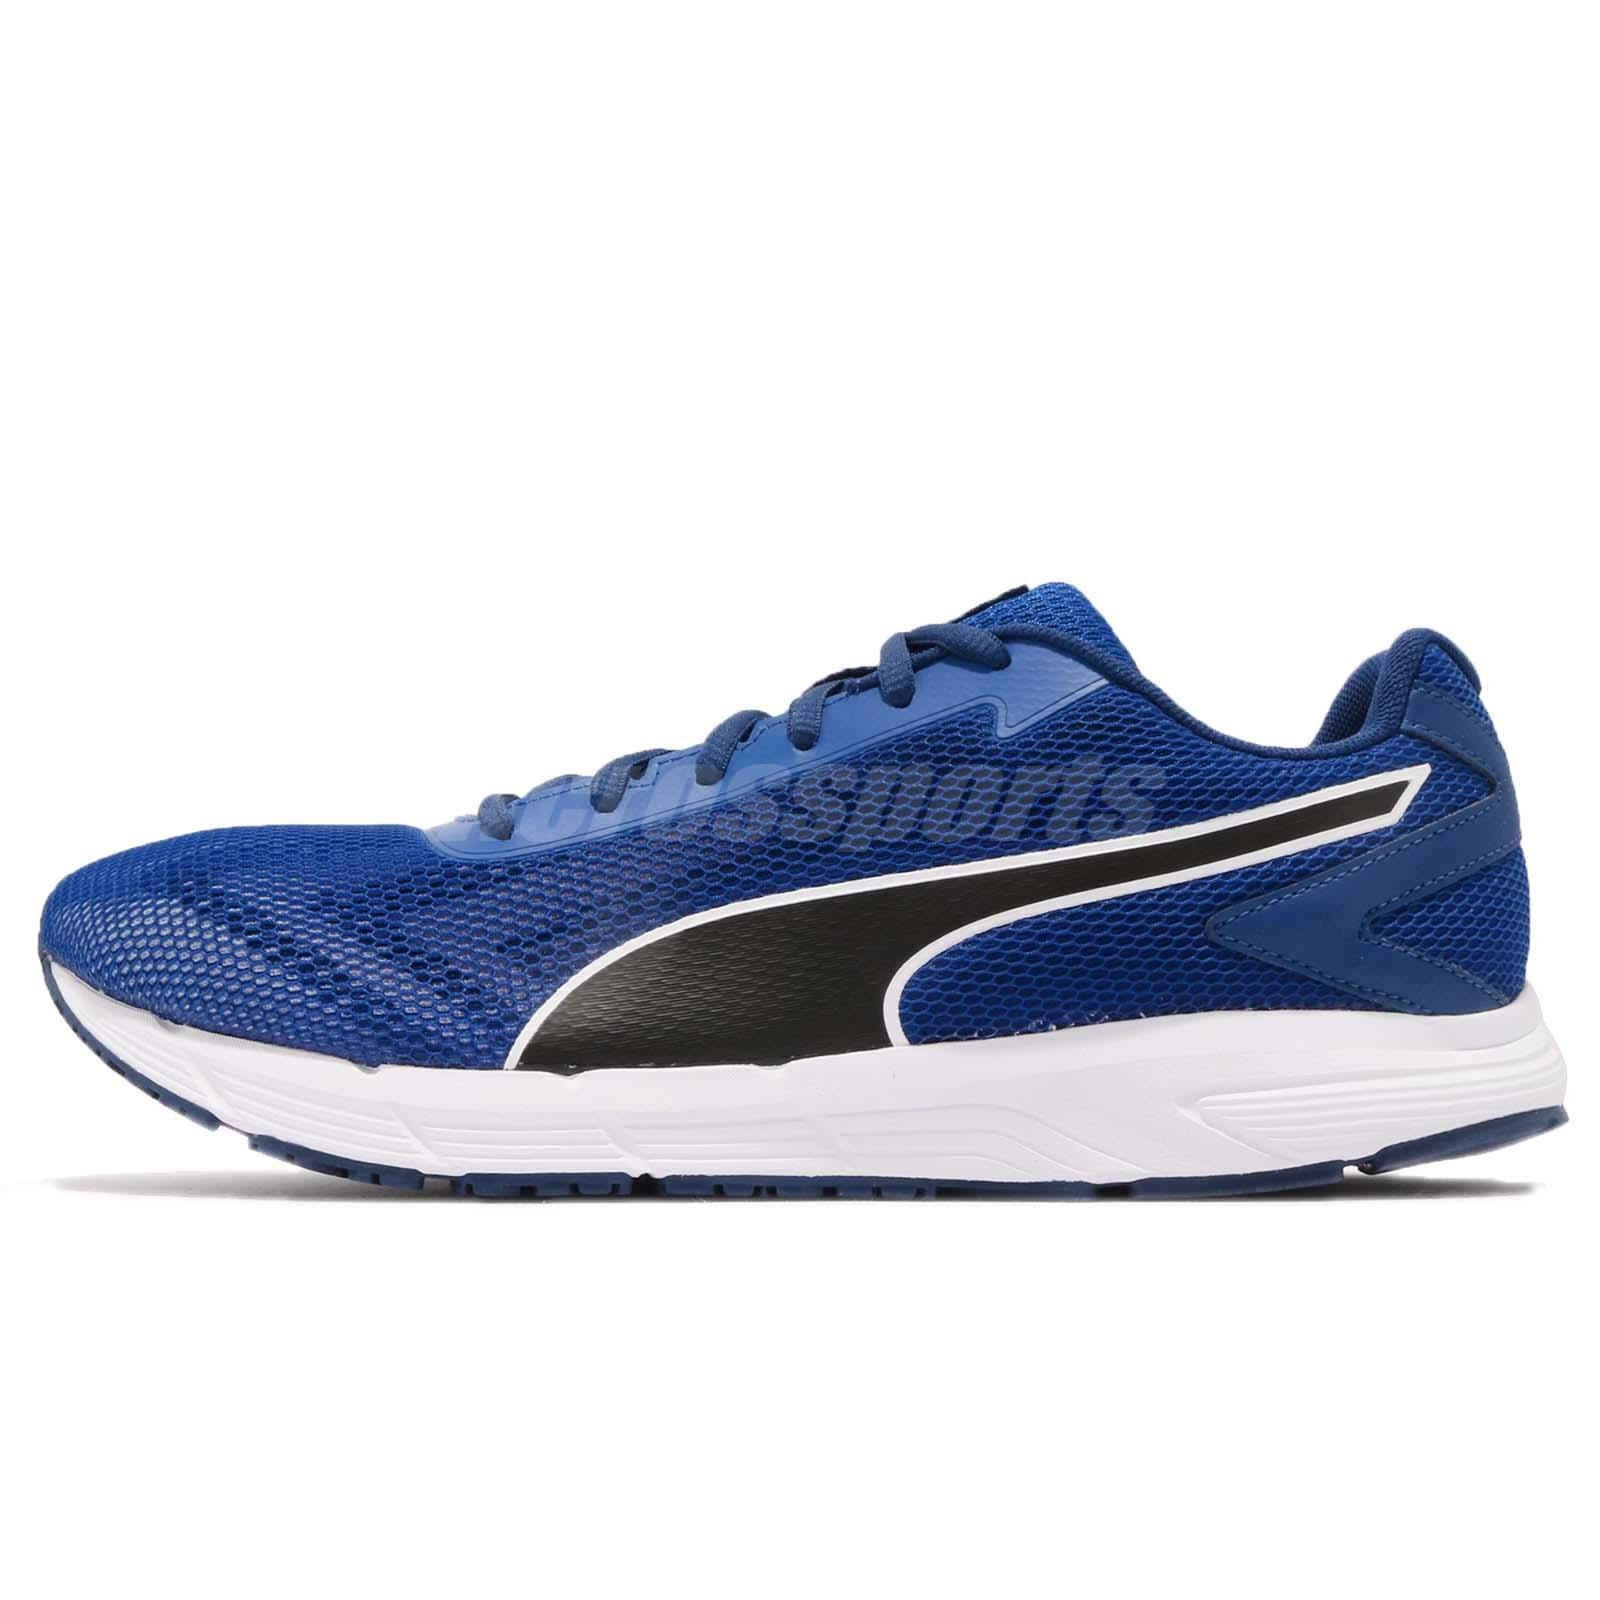 Puma Engine Blue Black White Mens Running Shoes Athletics Sneakers 189514-06 2689eb8370a76